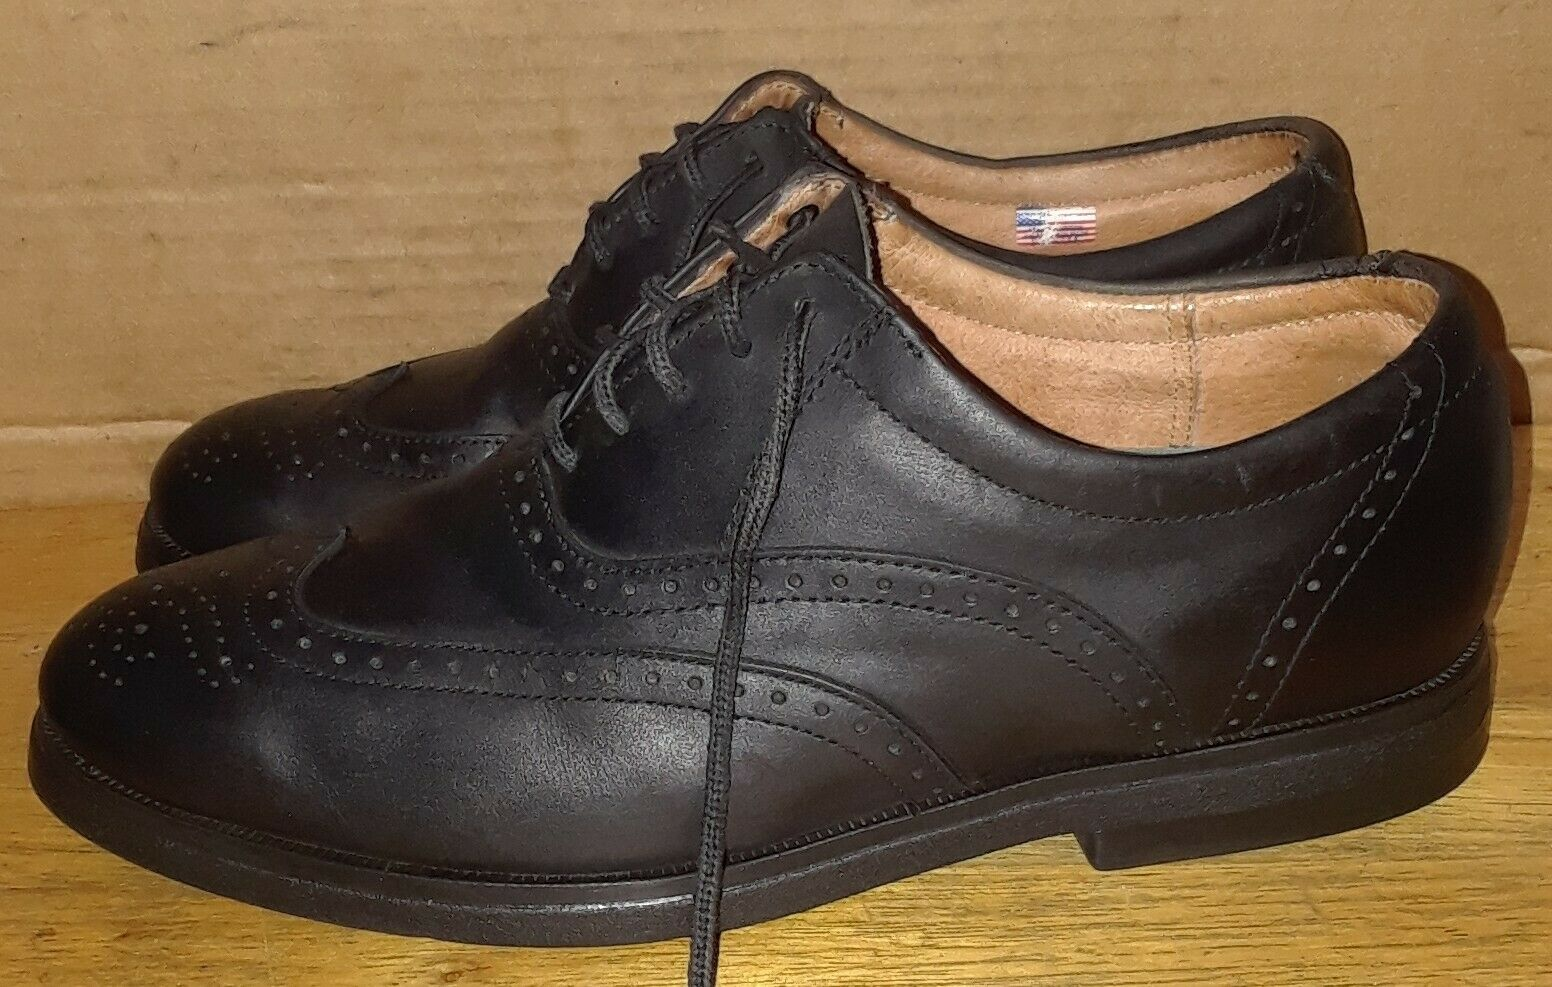 VTG 1990s Plum IE With NIKE AIR Leather Oxford. Sz 9 M Made in THE USA